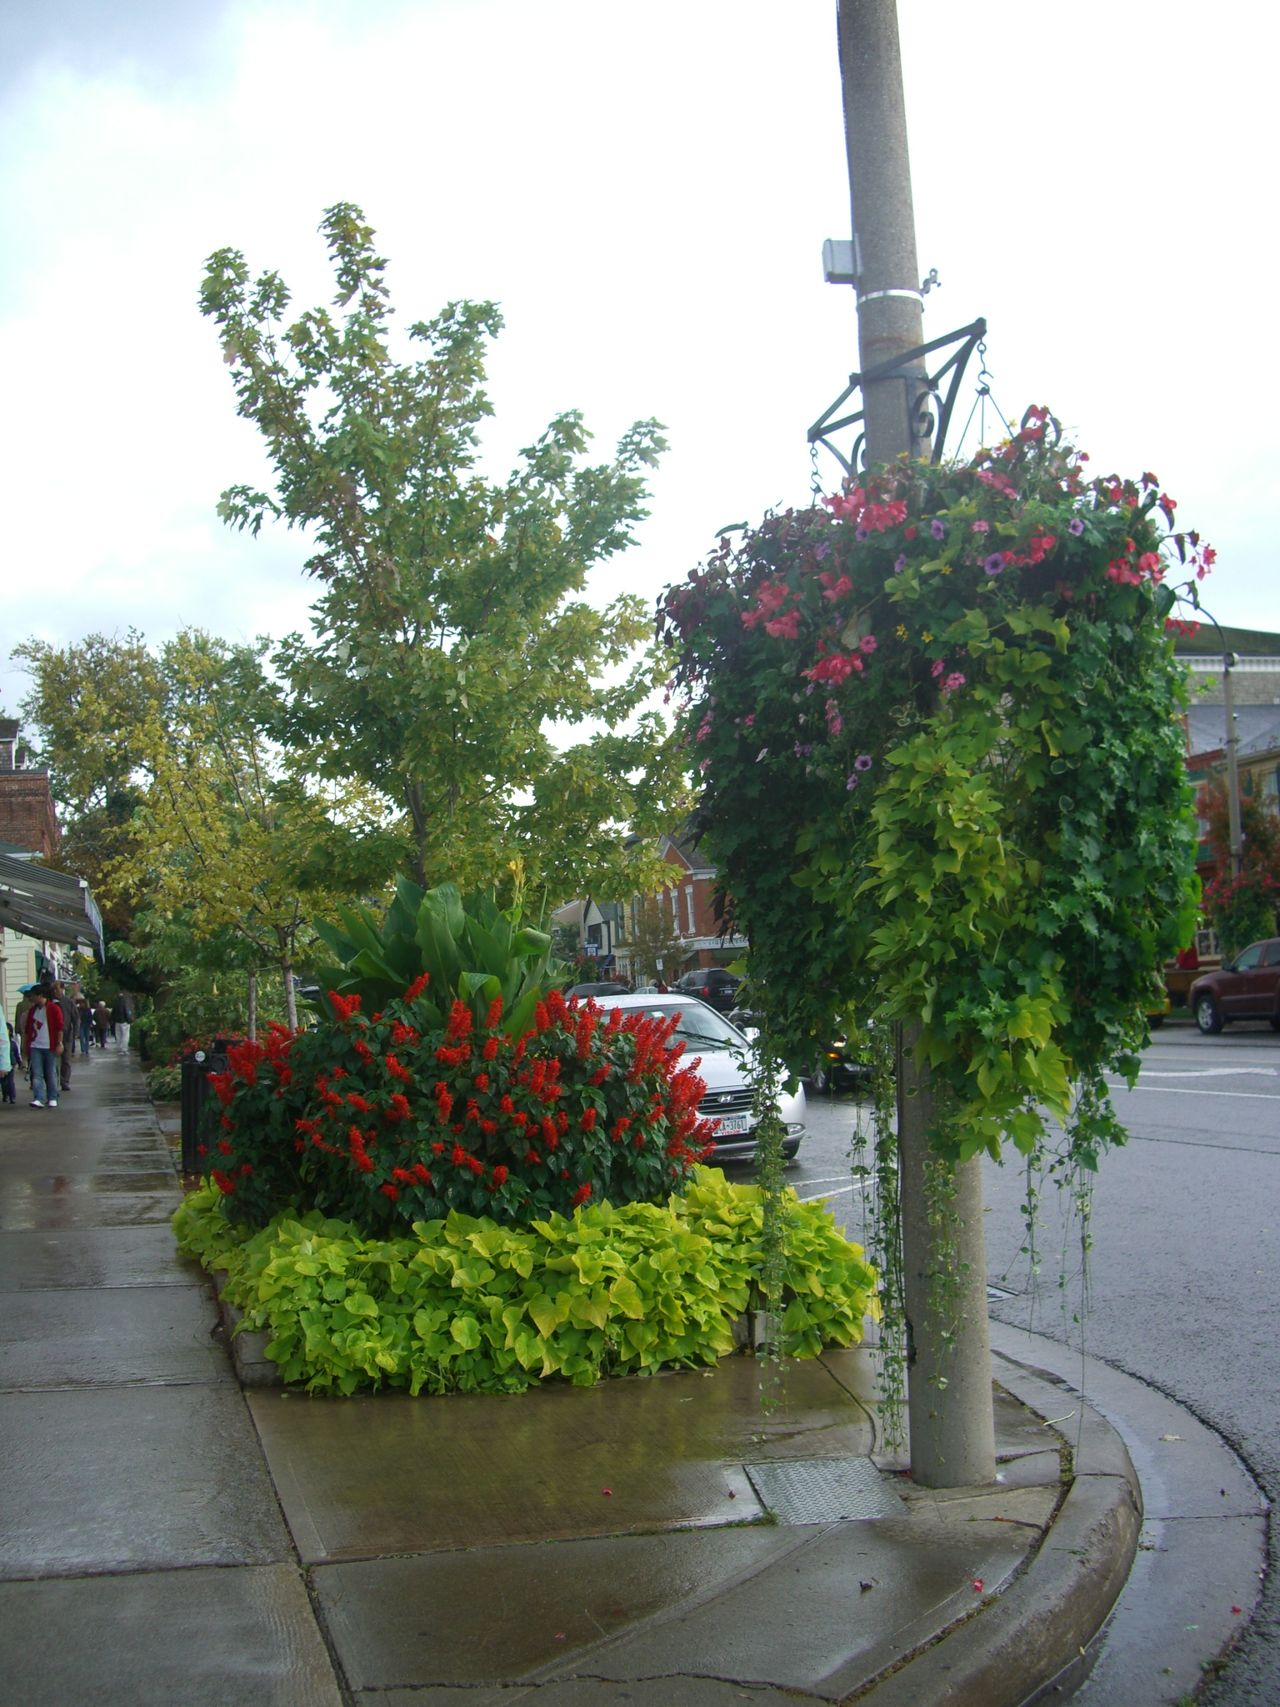 Street in Niagara on the Lake Beautifull Beauty In Nature Blooming Blossom Canada Cloudy Sky Composition Flowering Shrubs Flowers Footpath Fragility Freshness Growth Hanging Basket In Bloom Incidental People Niagara On The Lake Outdoor Photography Quaint  Street Tourism Tourist Attraction  Tourist Destination Tower Tree